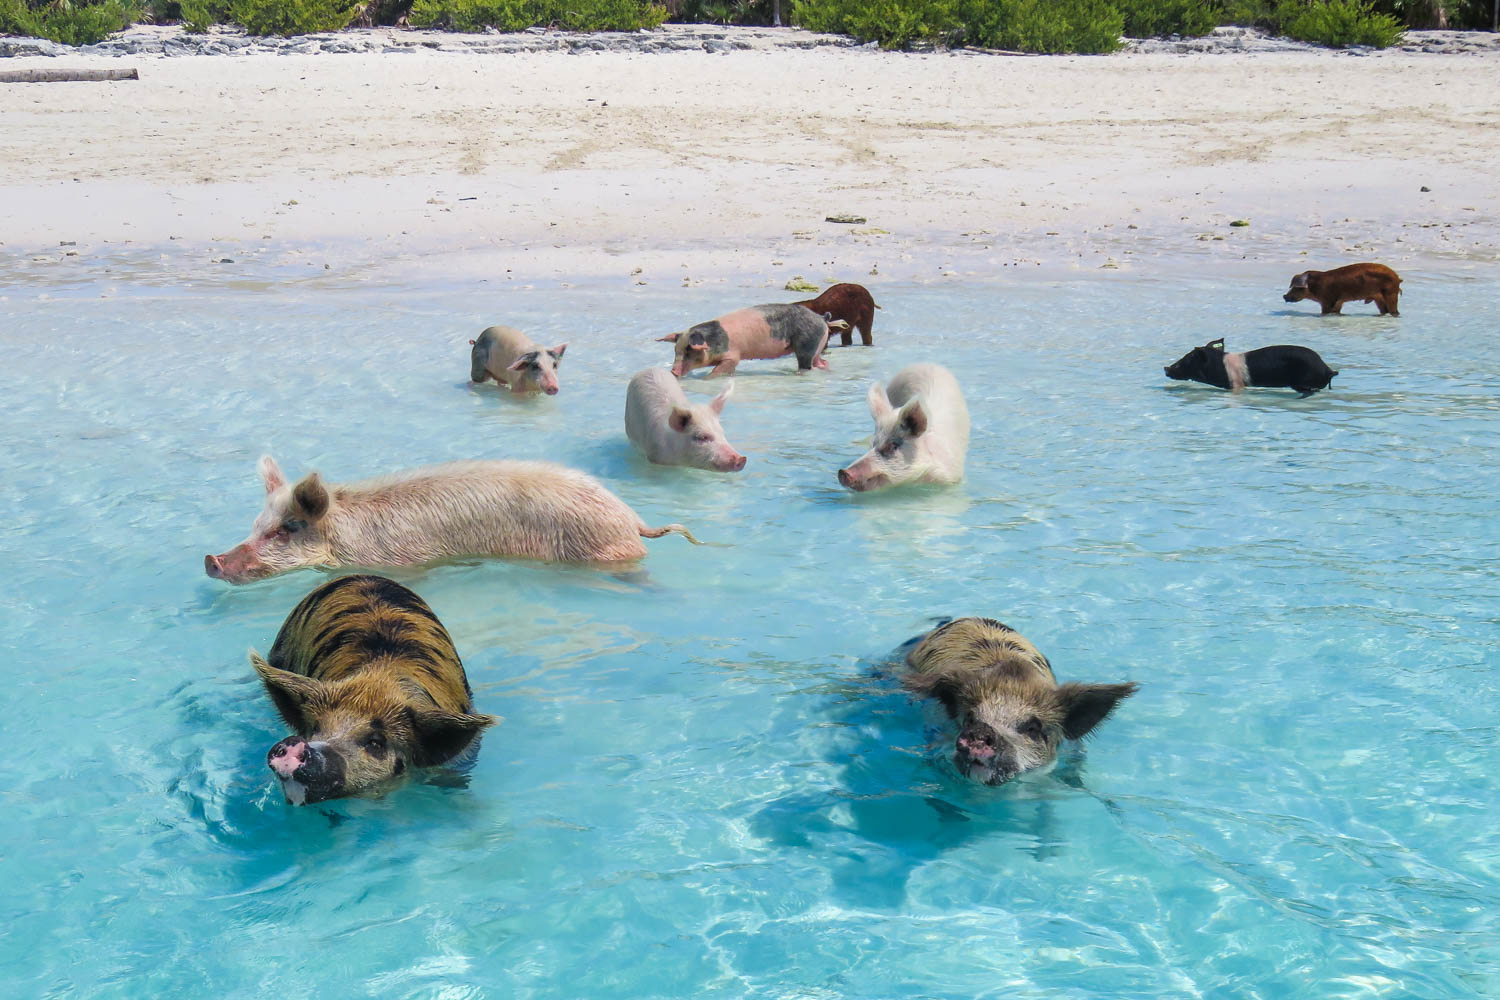 Pig Island Bahamas at Big Major Cay is the home of the Bahamas Swimming Pigs in the Exuma islands. You can visit Pig Beach on a Bahamas Day Trip from Miami or Nassau.